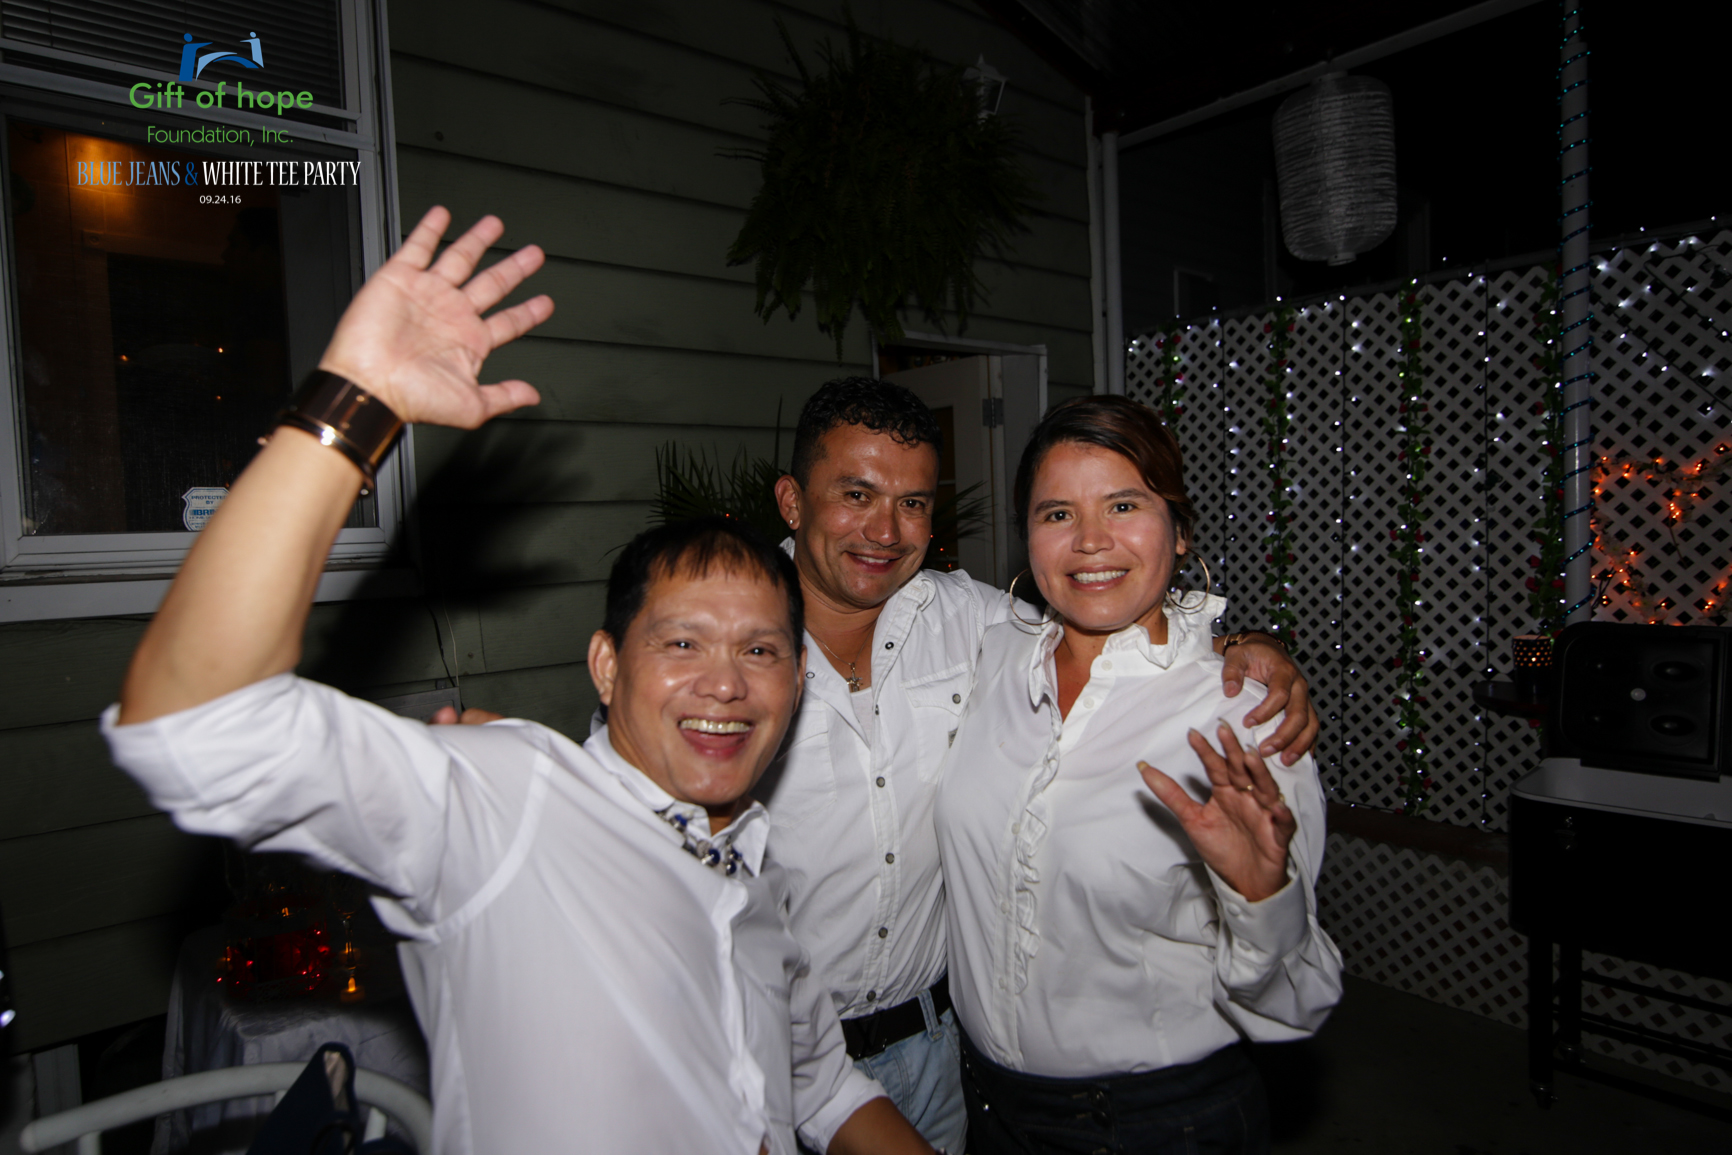 GoH_WhiteParty-37